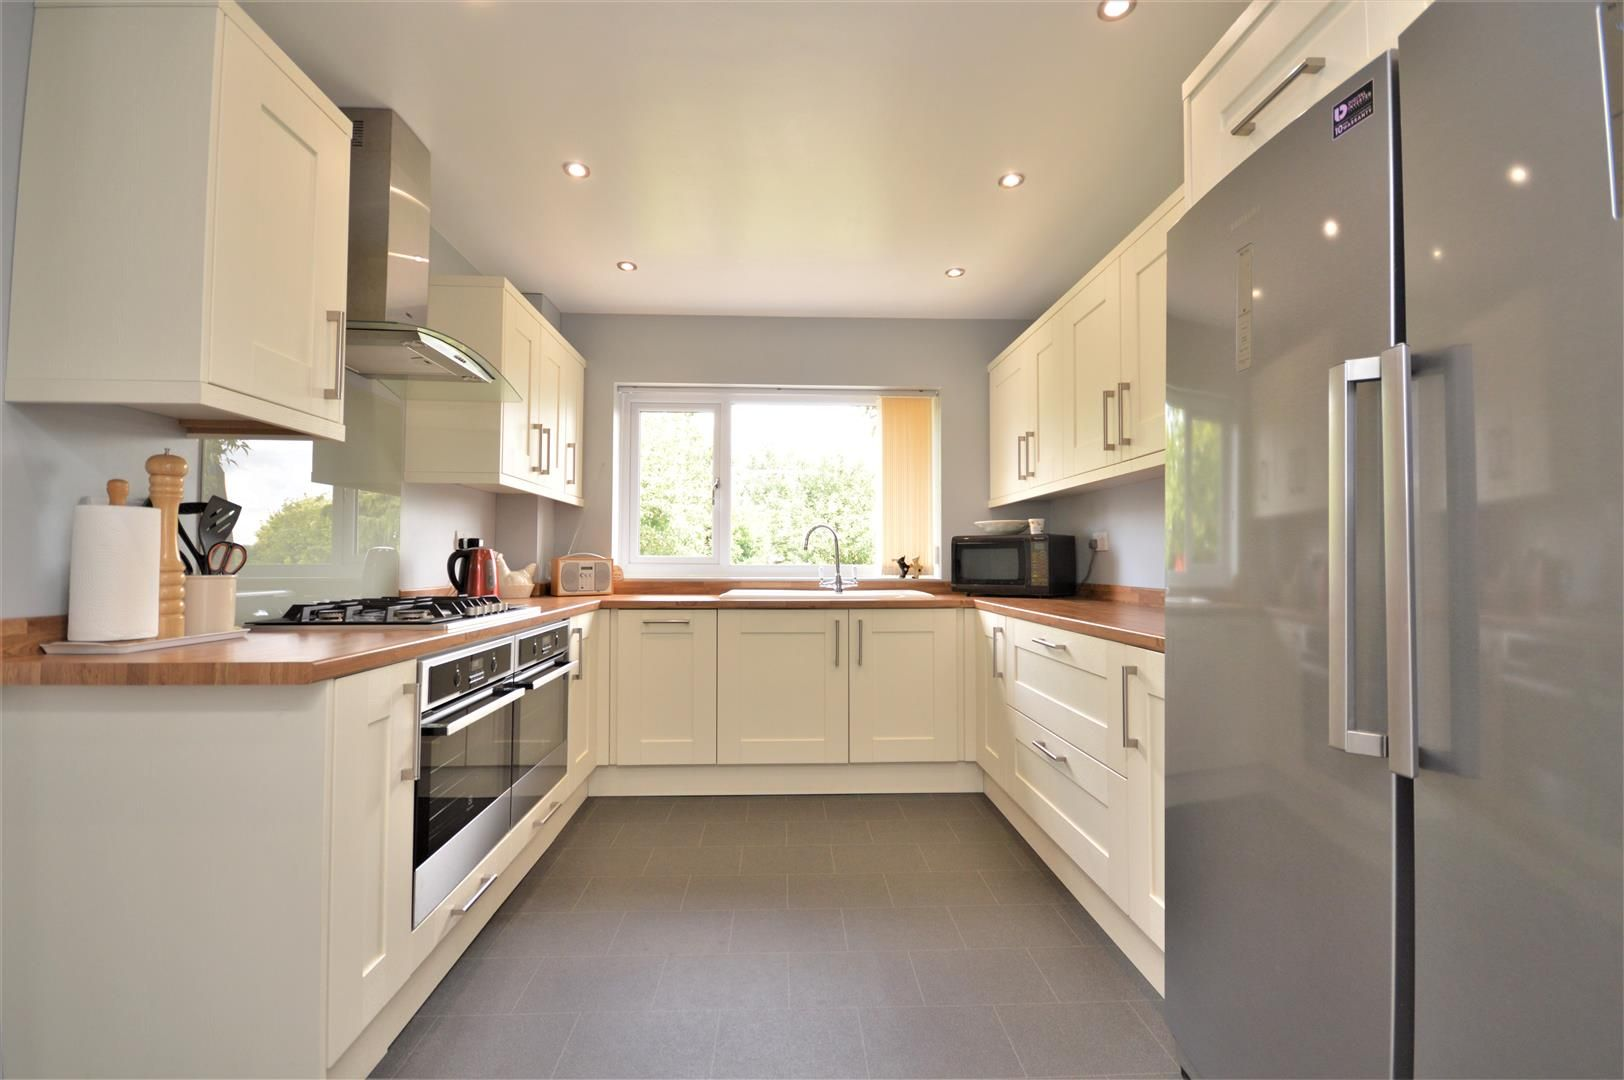 3 bed detached for sale in Kings Caple 5